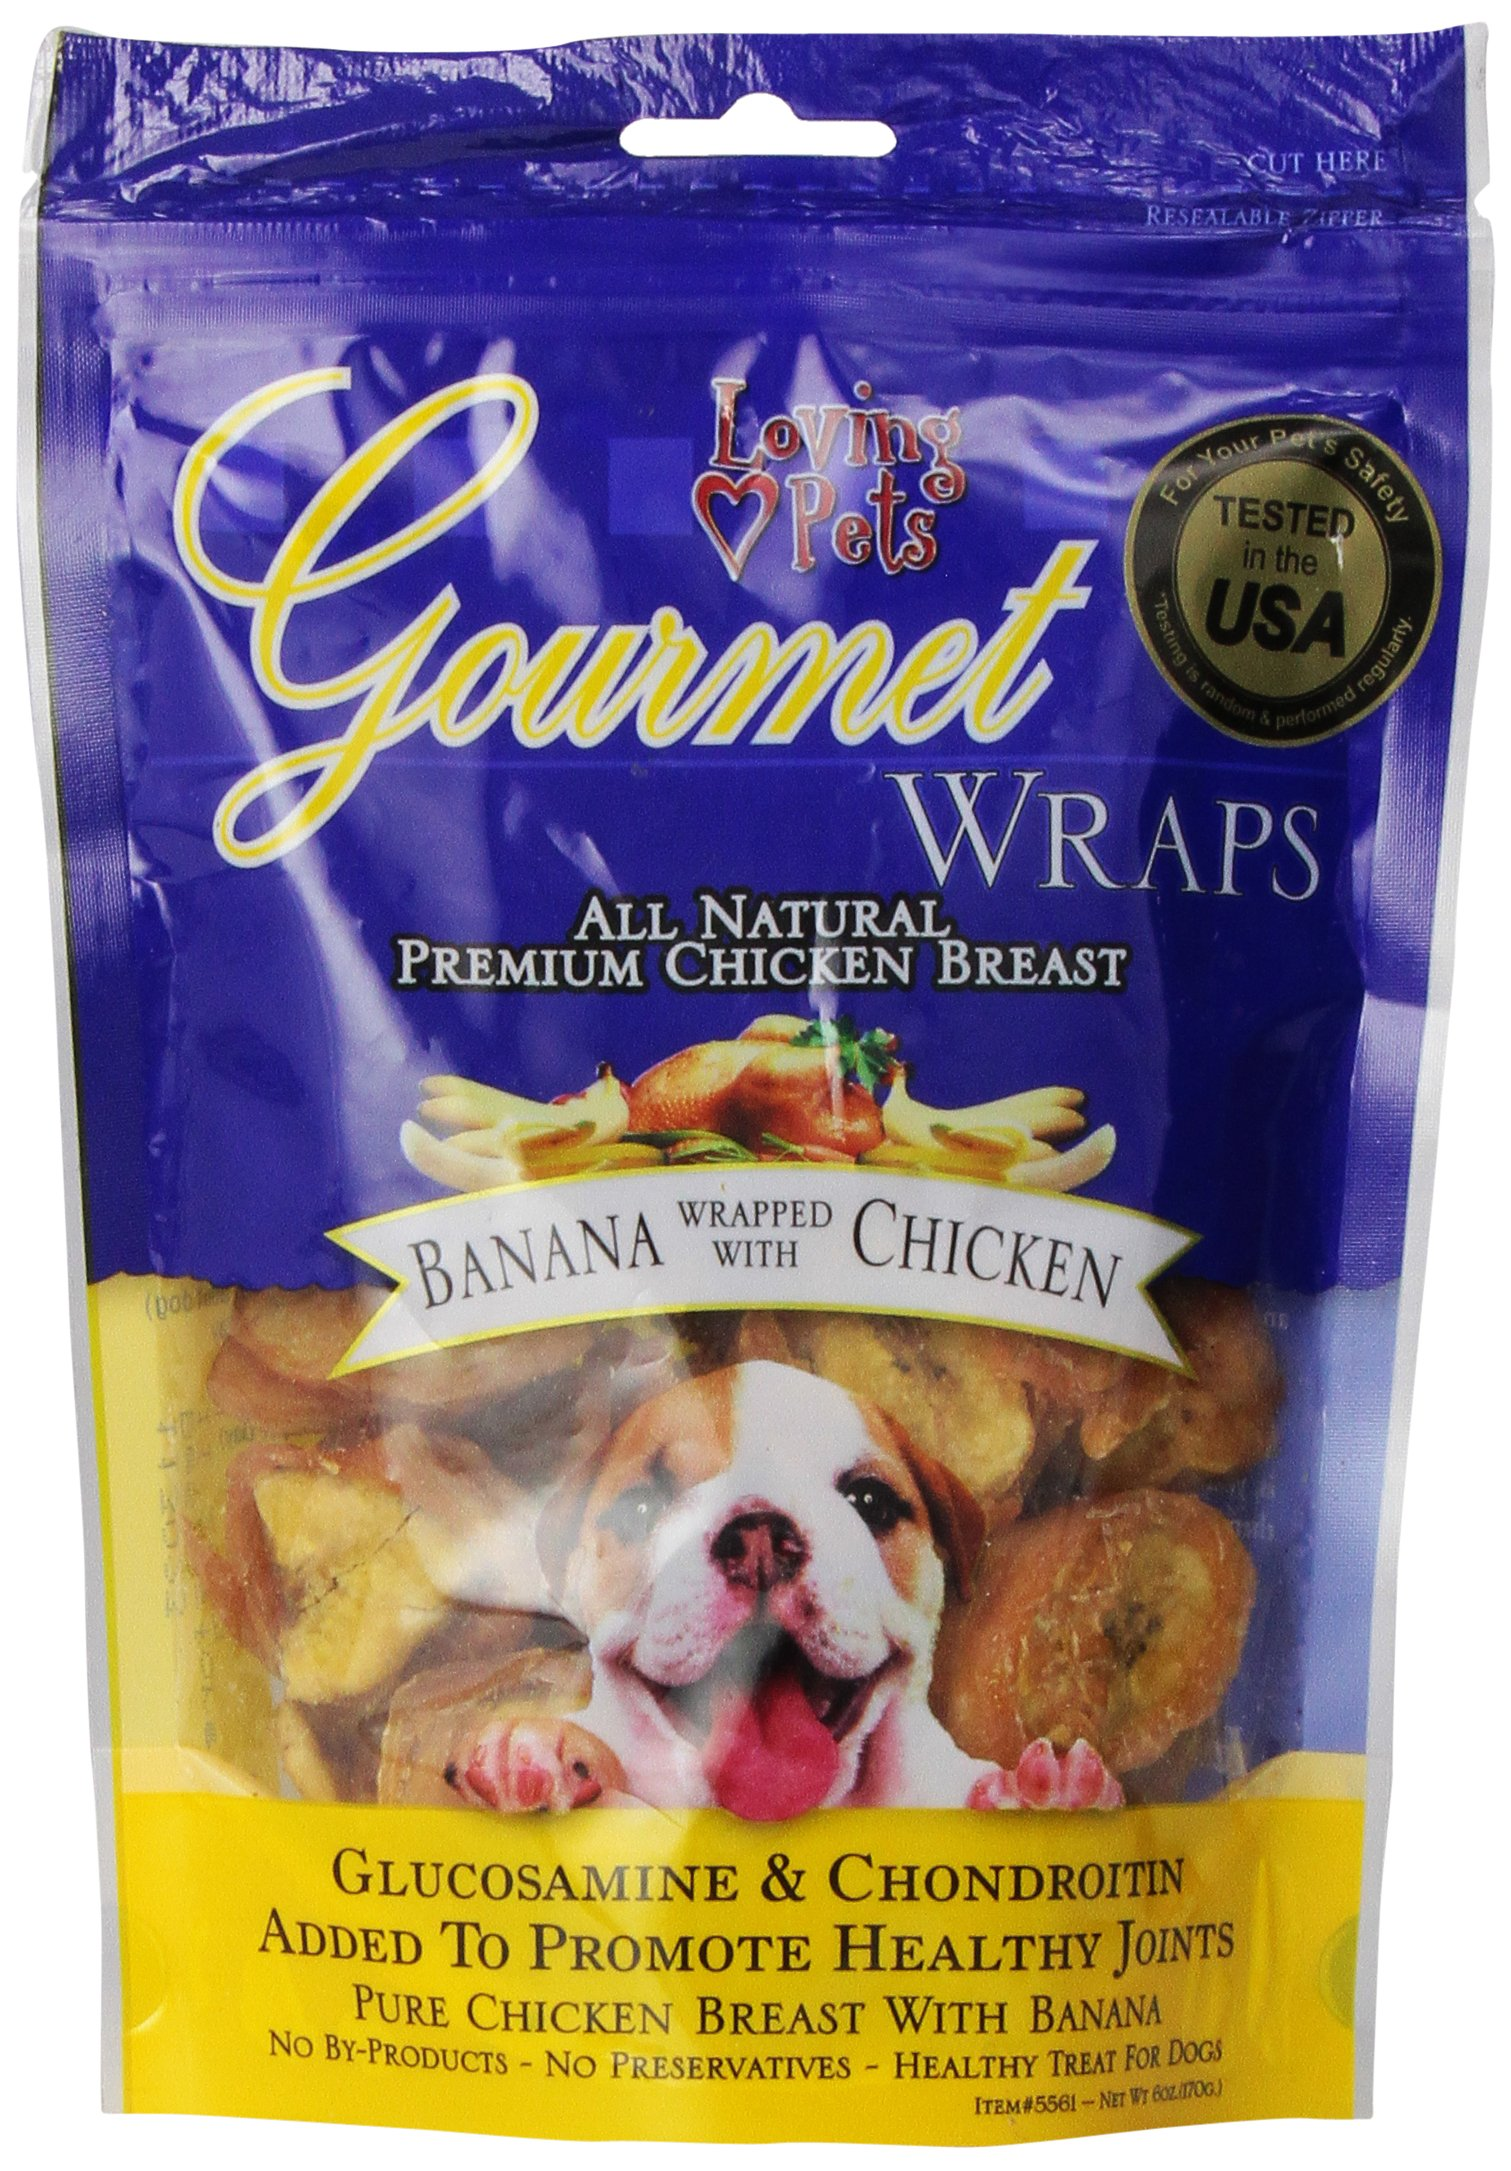 Loving Pets All Natural Premium Banana and Chicken Wraps with Glucosamine and Chondroitin Dog Treats, 6 oz by Loving Pets (Image #1)